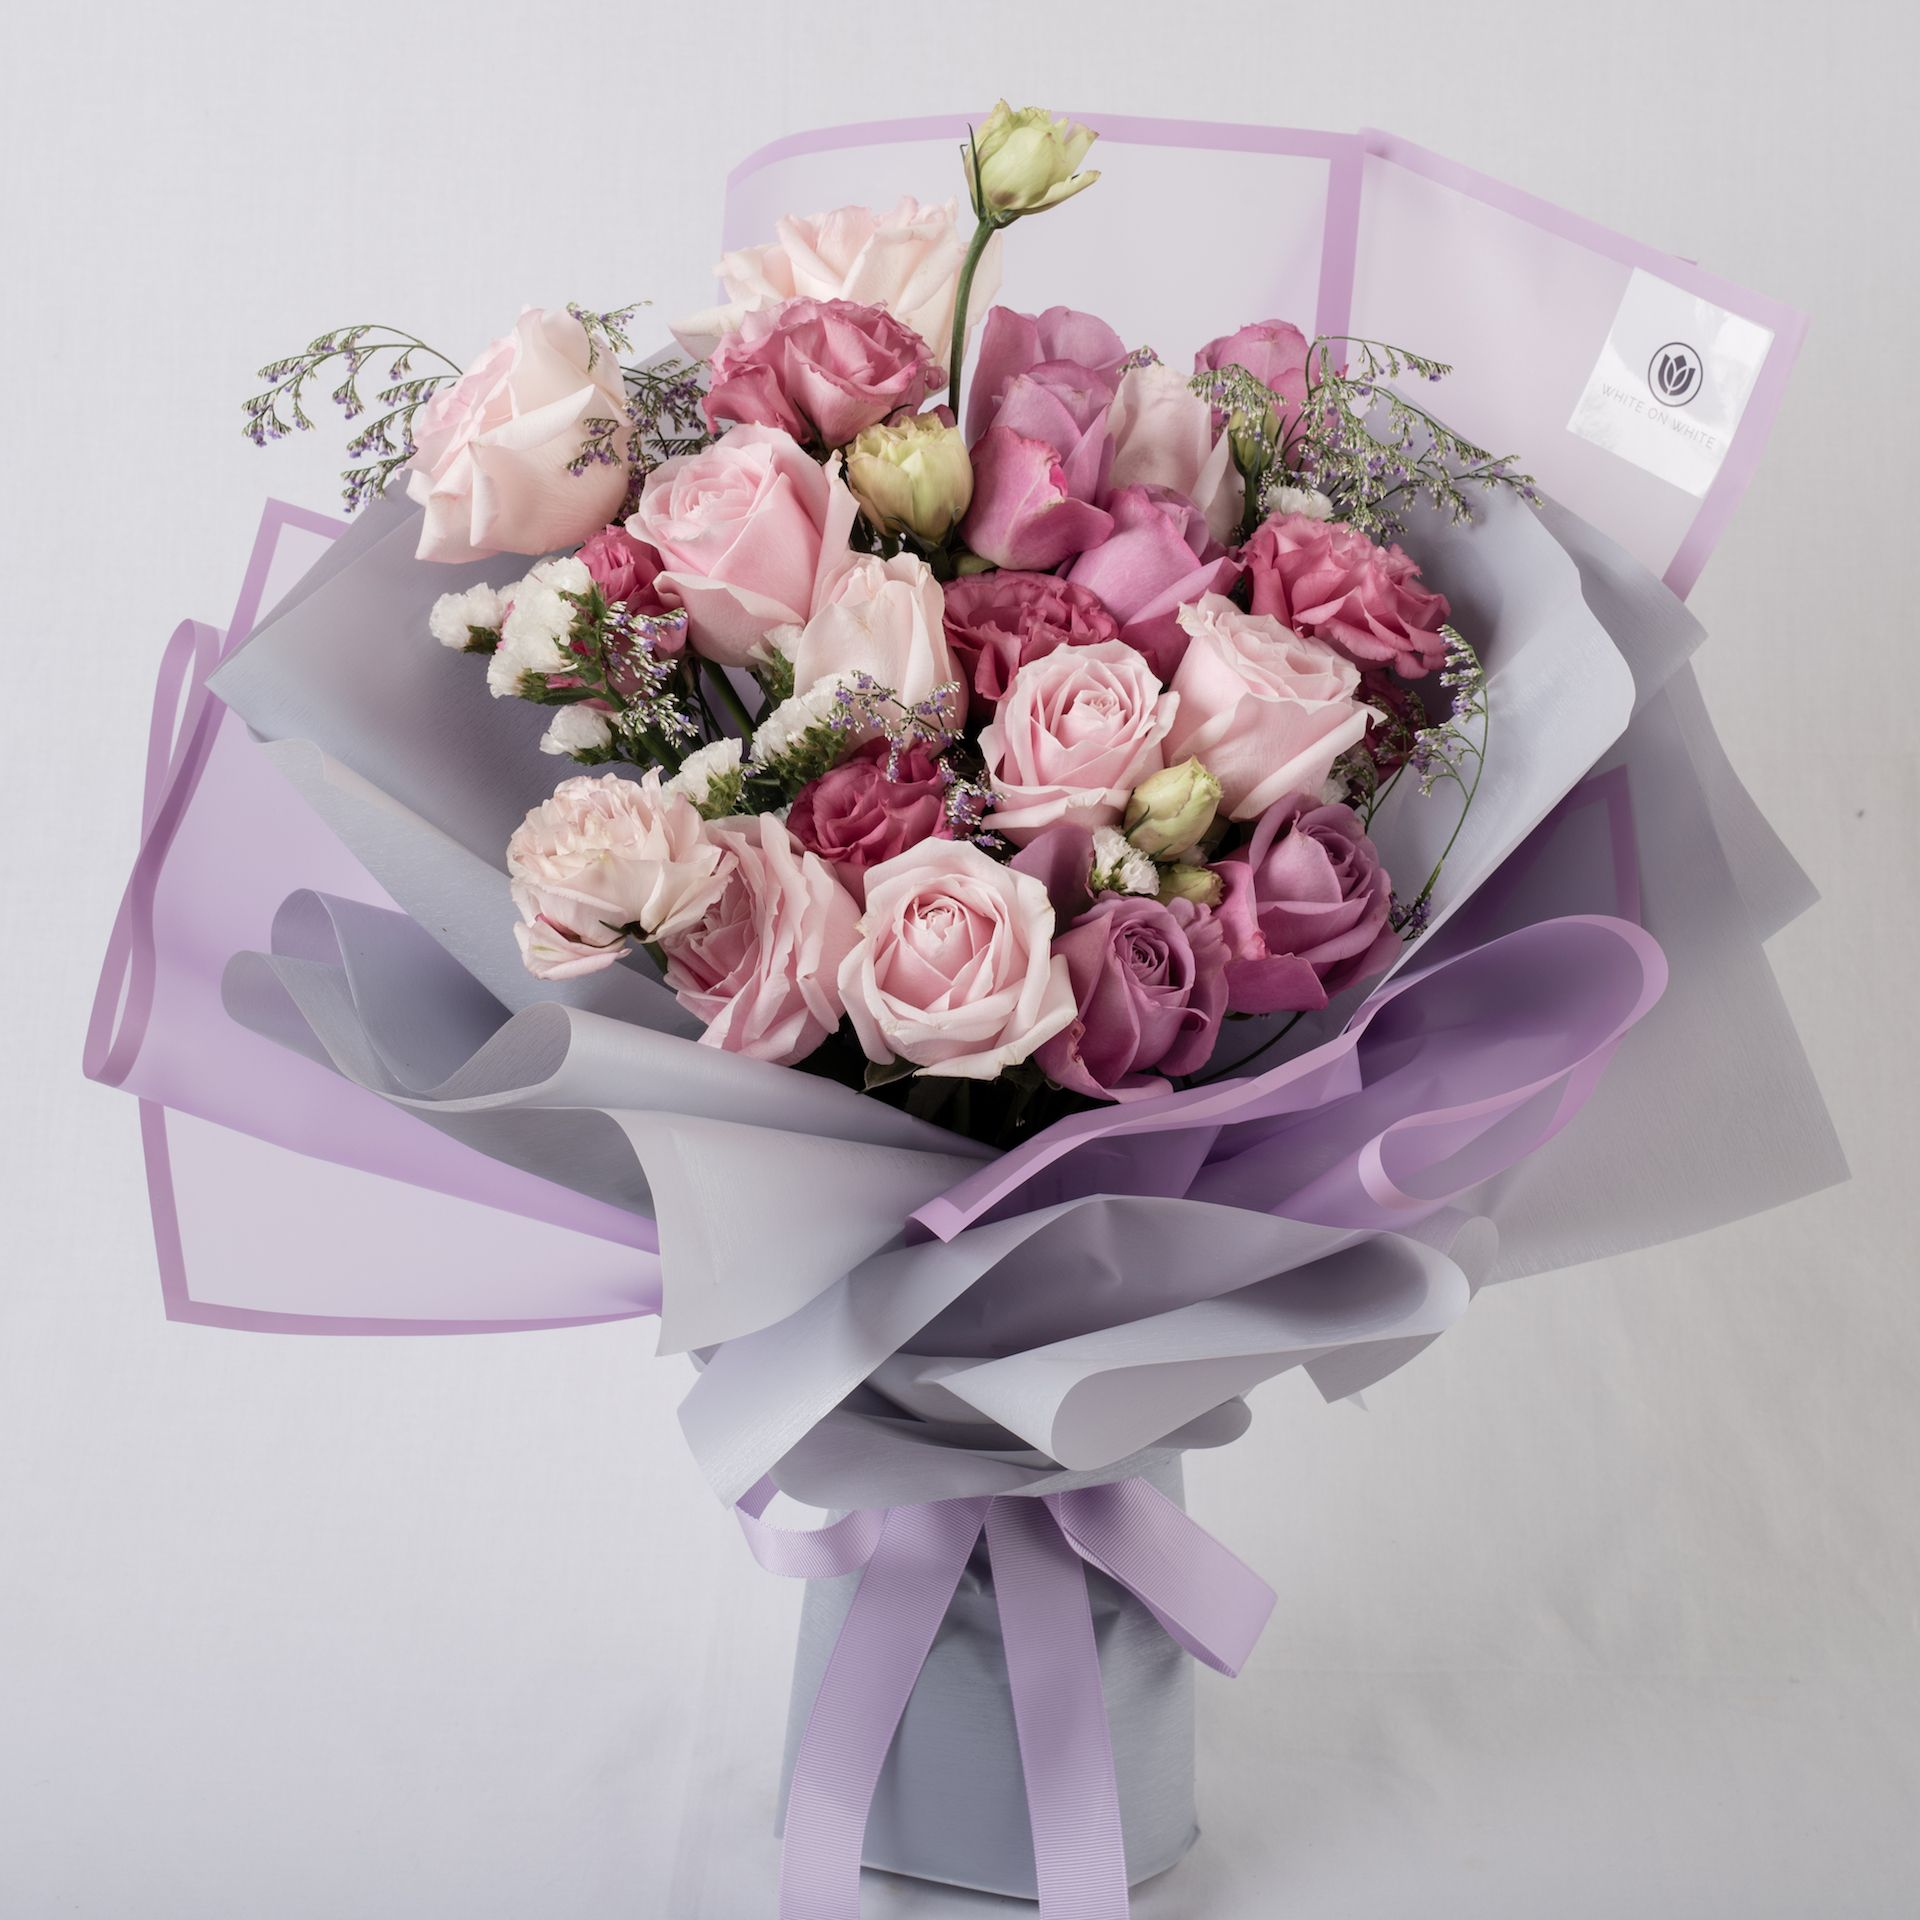 Bouquet Of Light Pink Purple Check Out Our Site For More Ideas And Inspiration Flowers Bouquet Gift Purple Flower Bouquet Birthday Flowers Arrangements